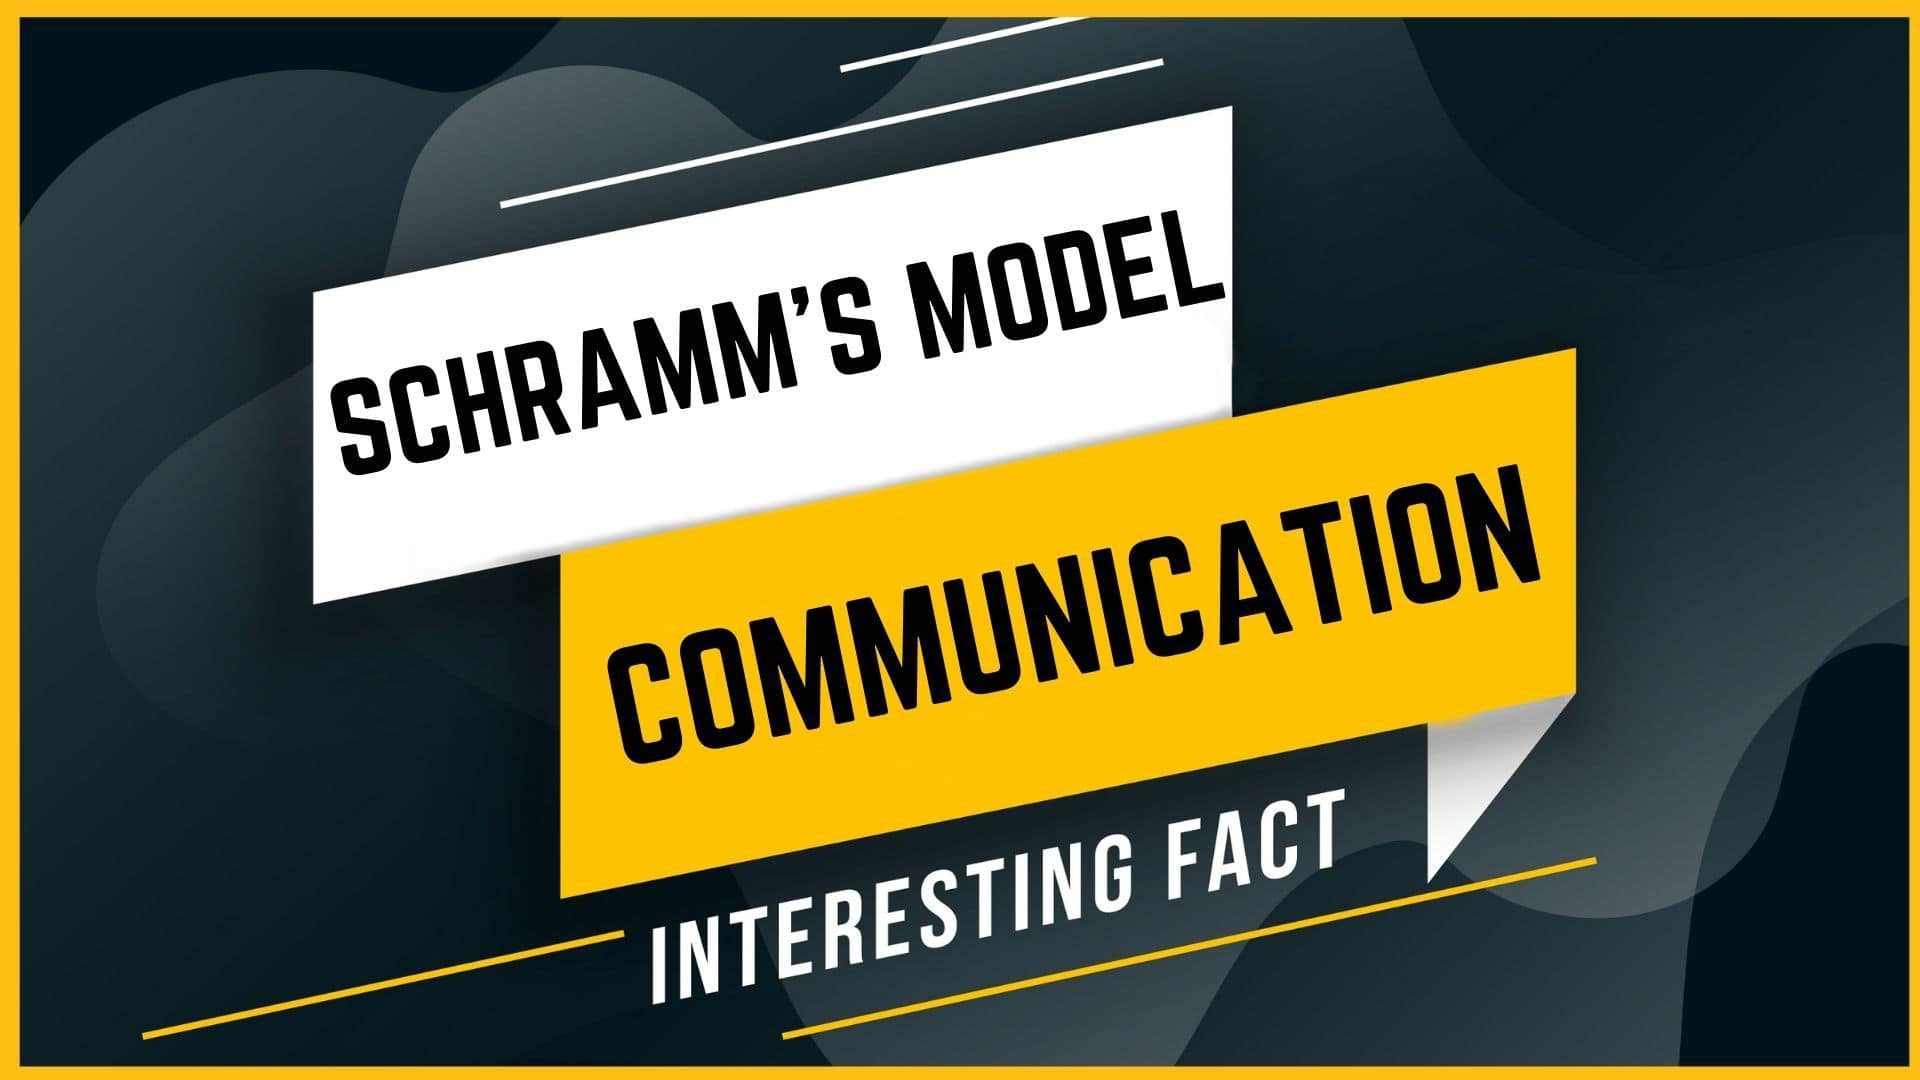 Schramm's model of communication